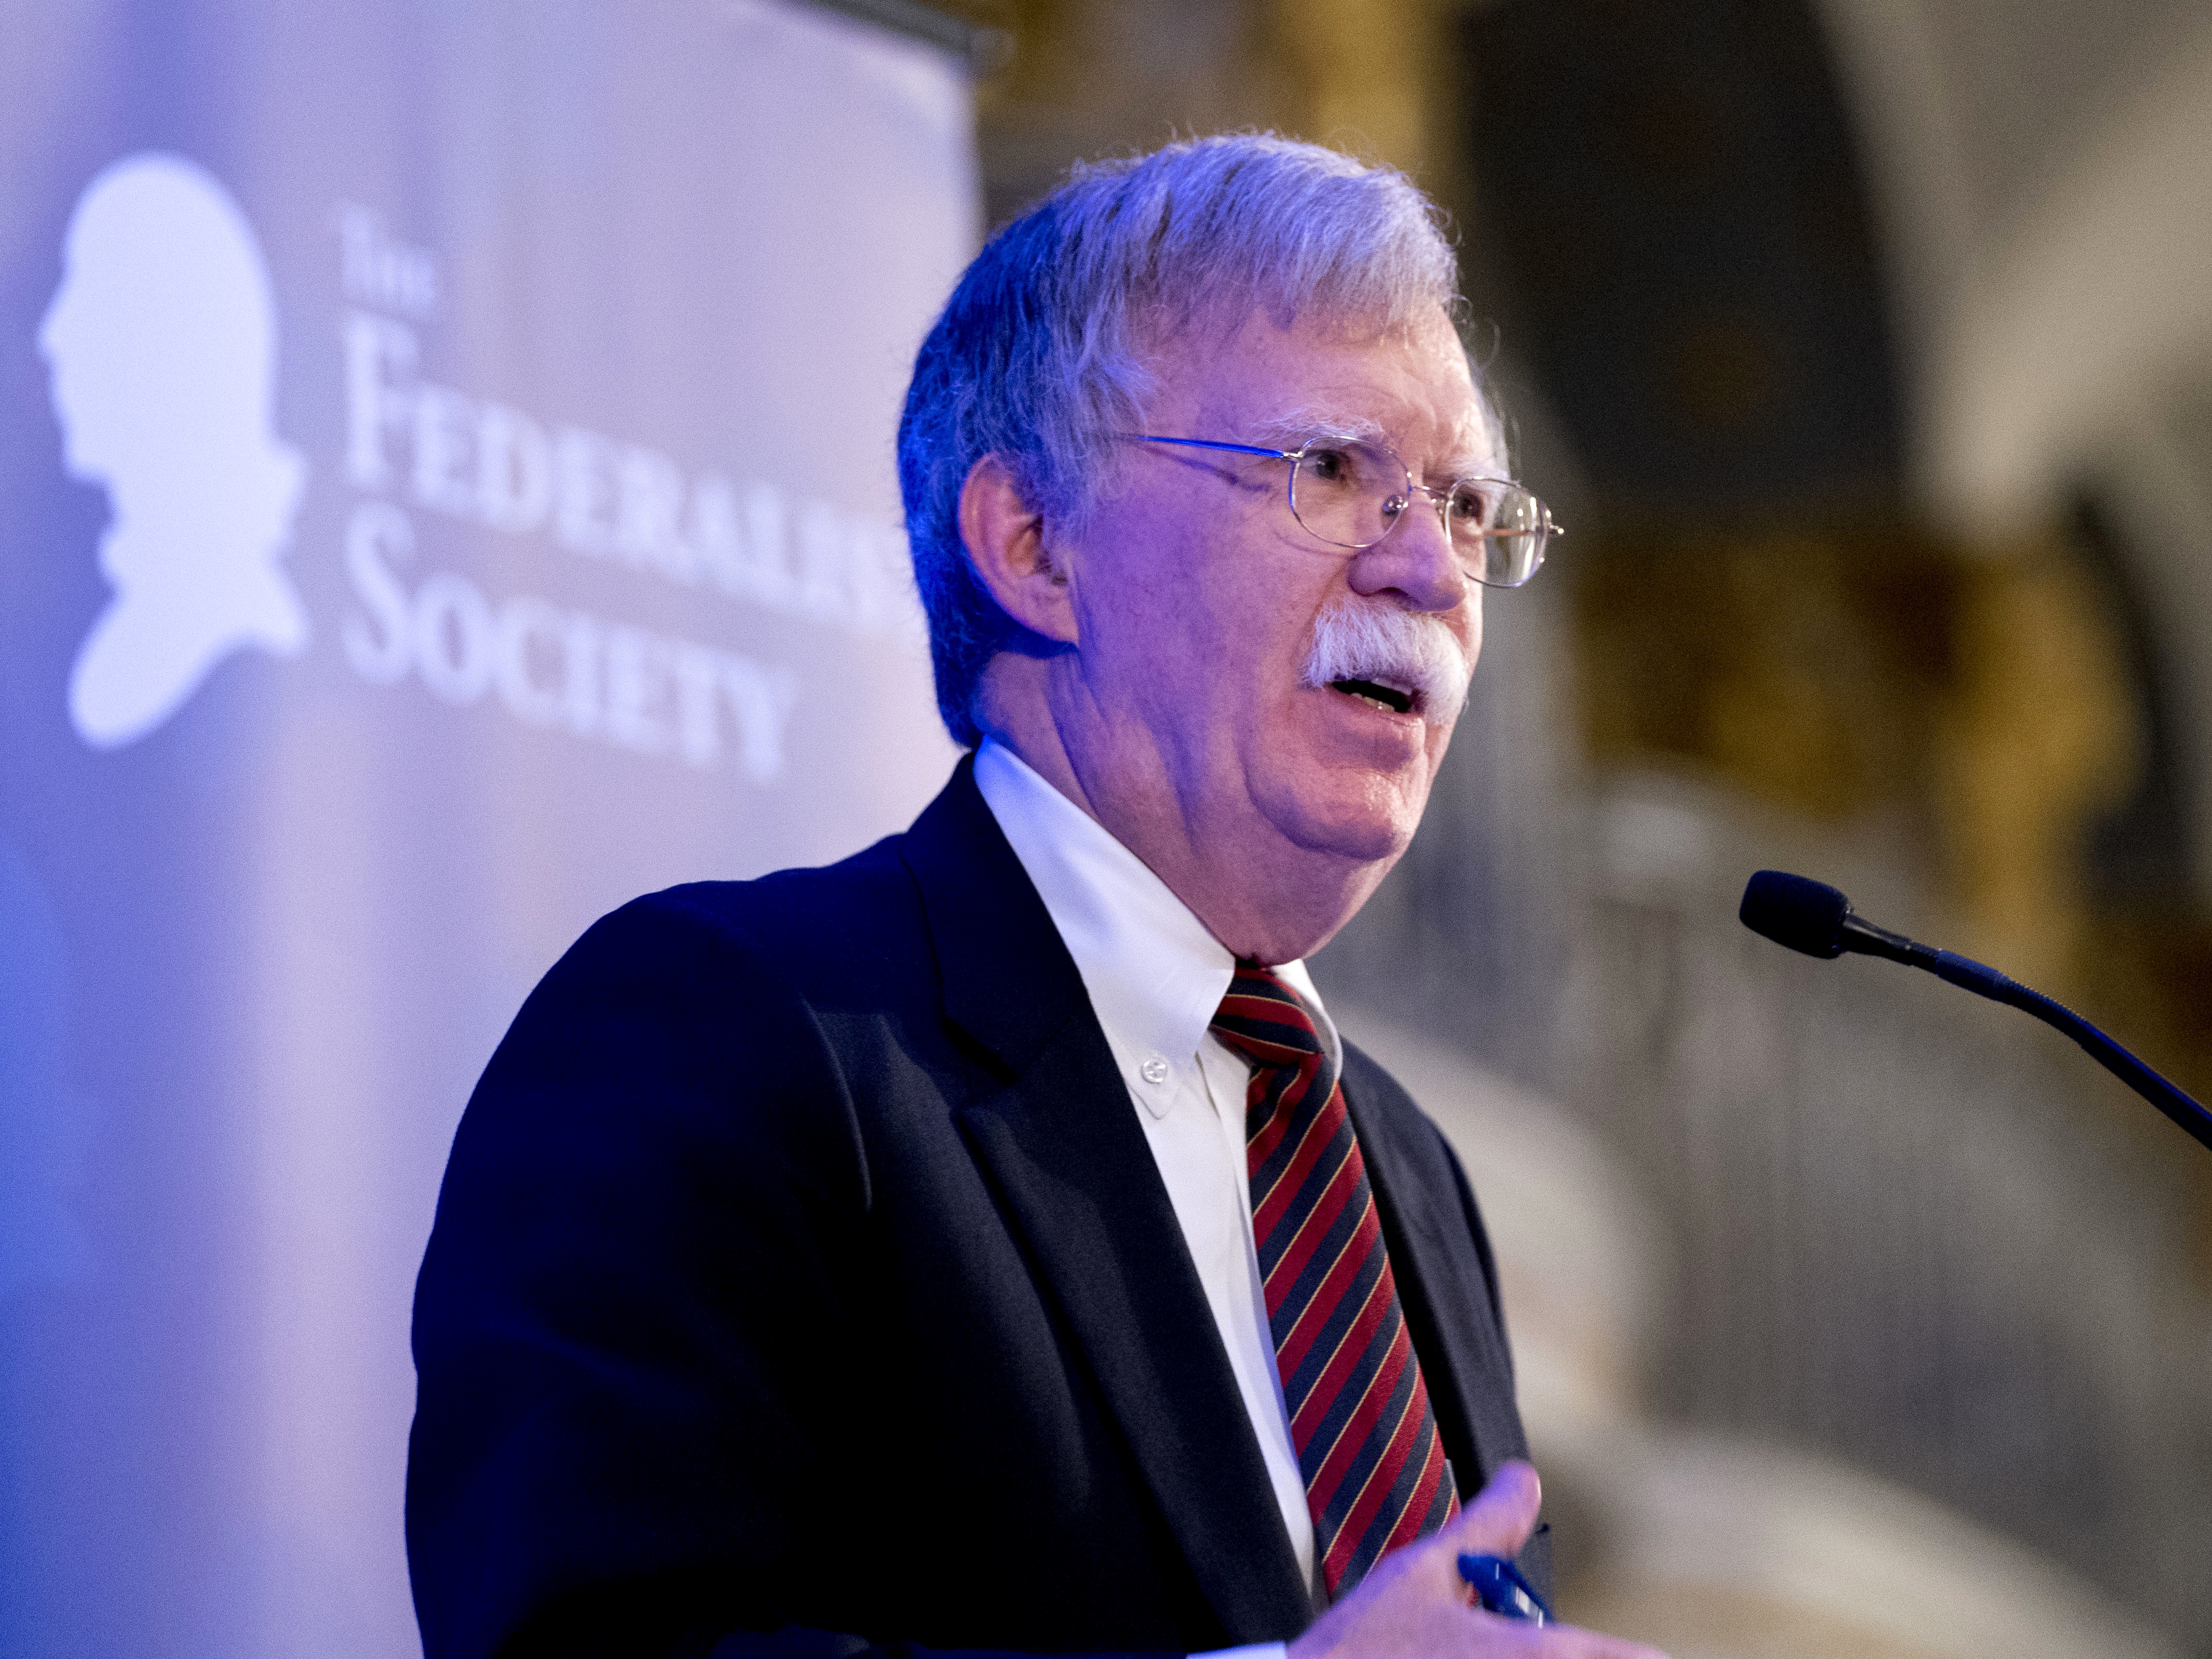 Then-National Security Adviser John Bolton speaks at a Federalist Society luncheon at the Mayflower Hotel on Sept. 10 in Washington.